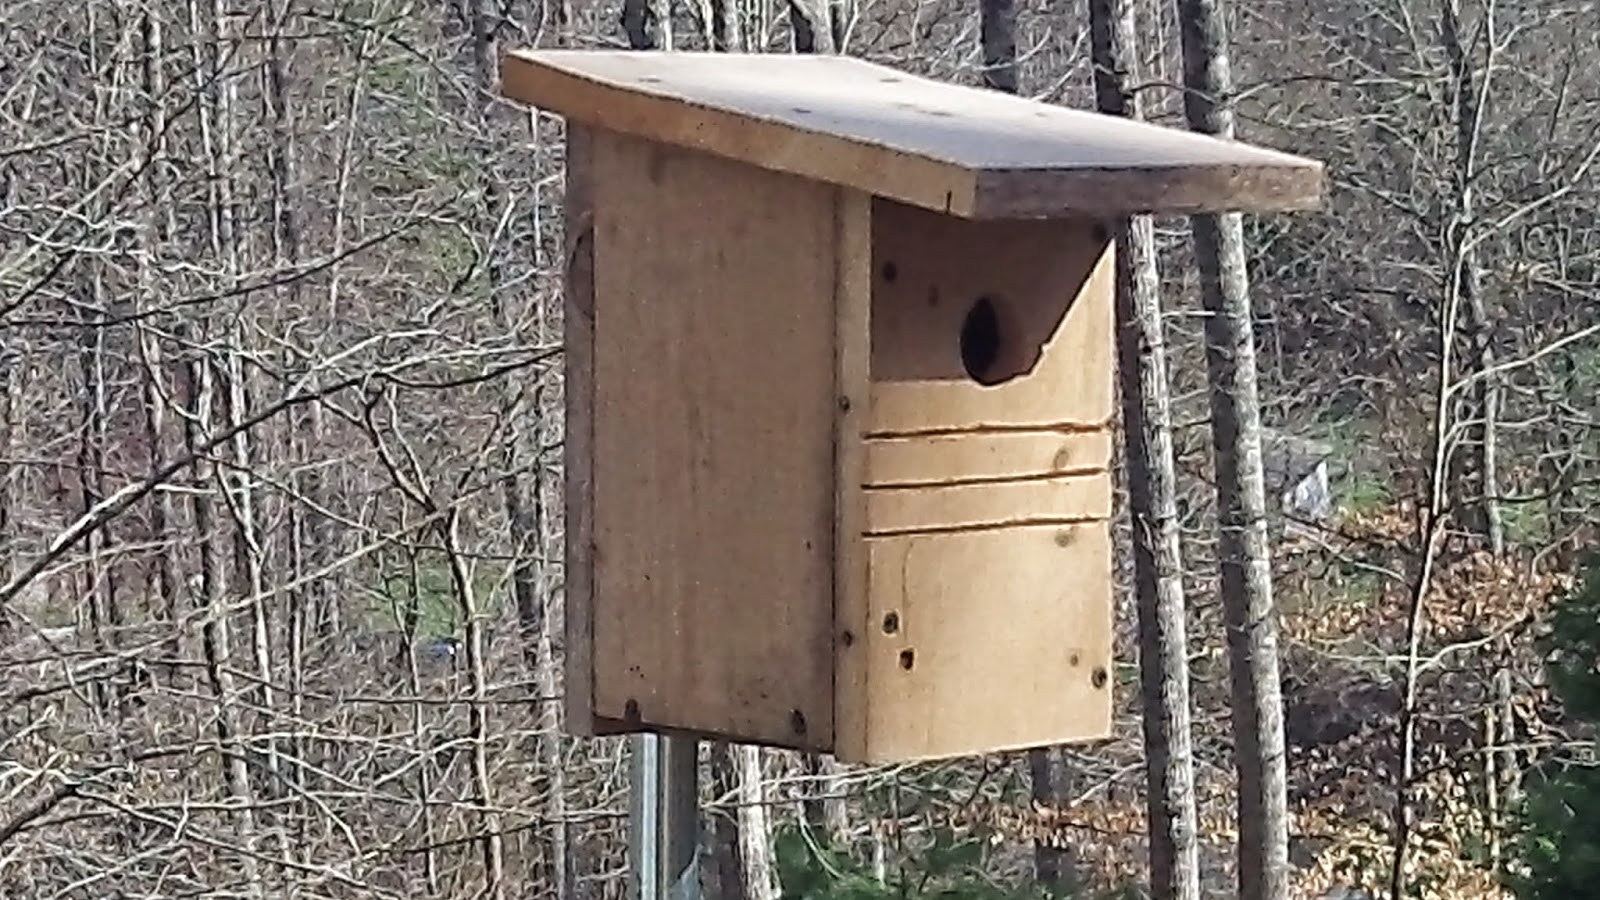 Bluebird Nesting Box made from recovered lumber